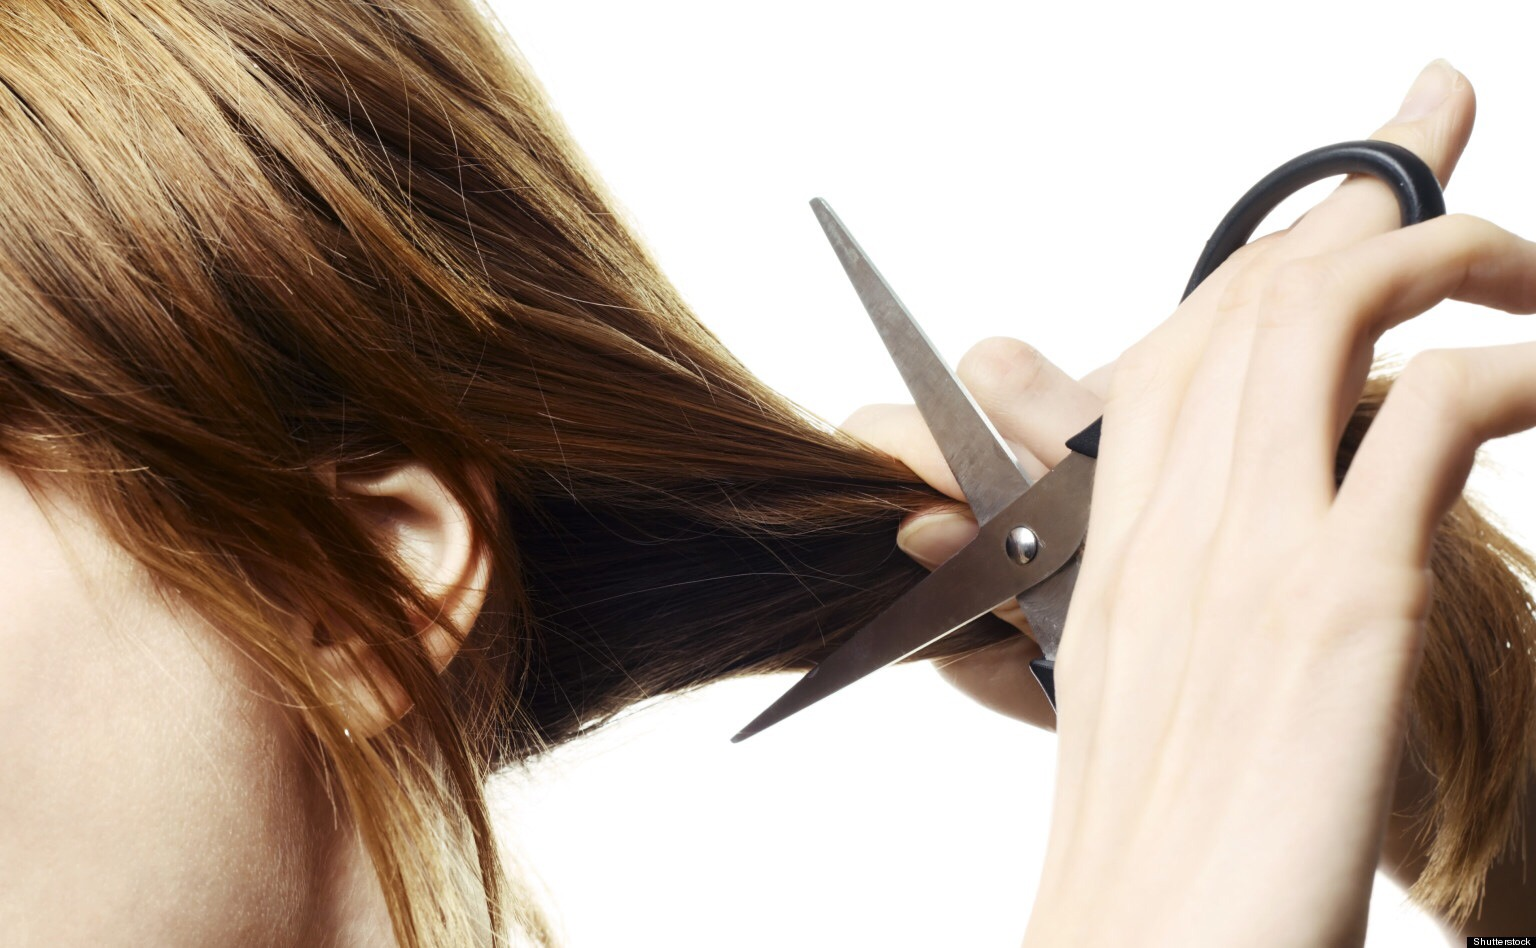 Get split ends removed once every 2 months and/or a small trim. Don't take any more than 1/2 an inch off.